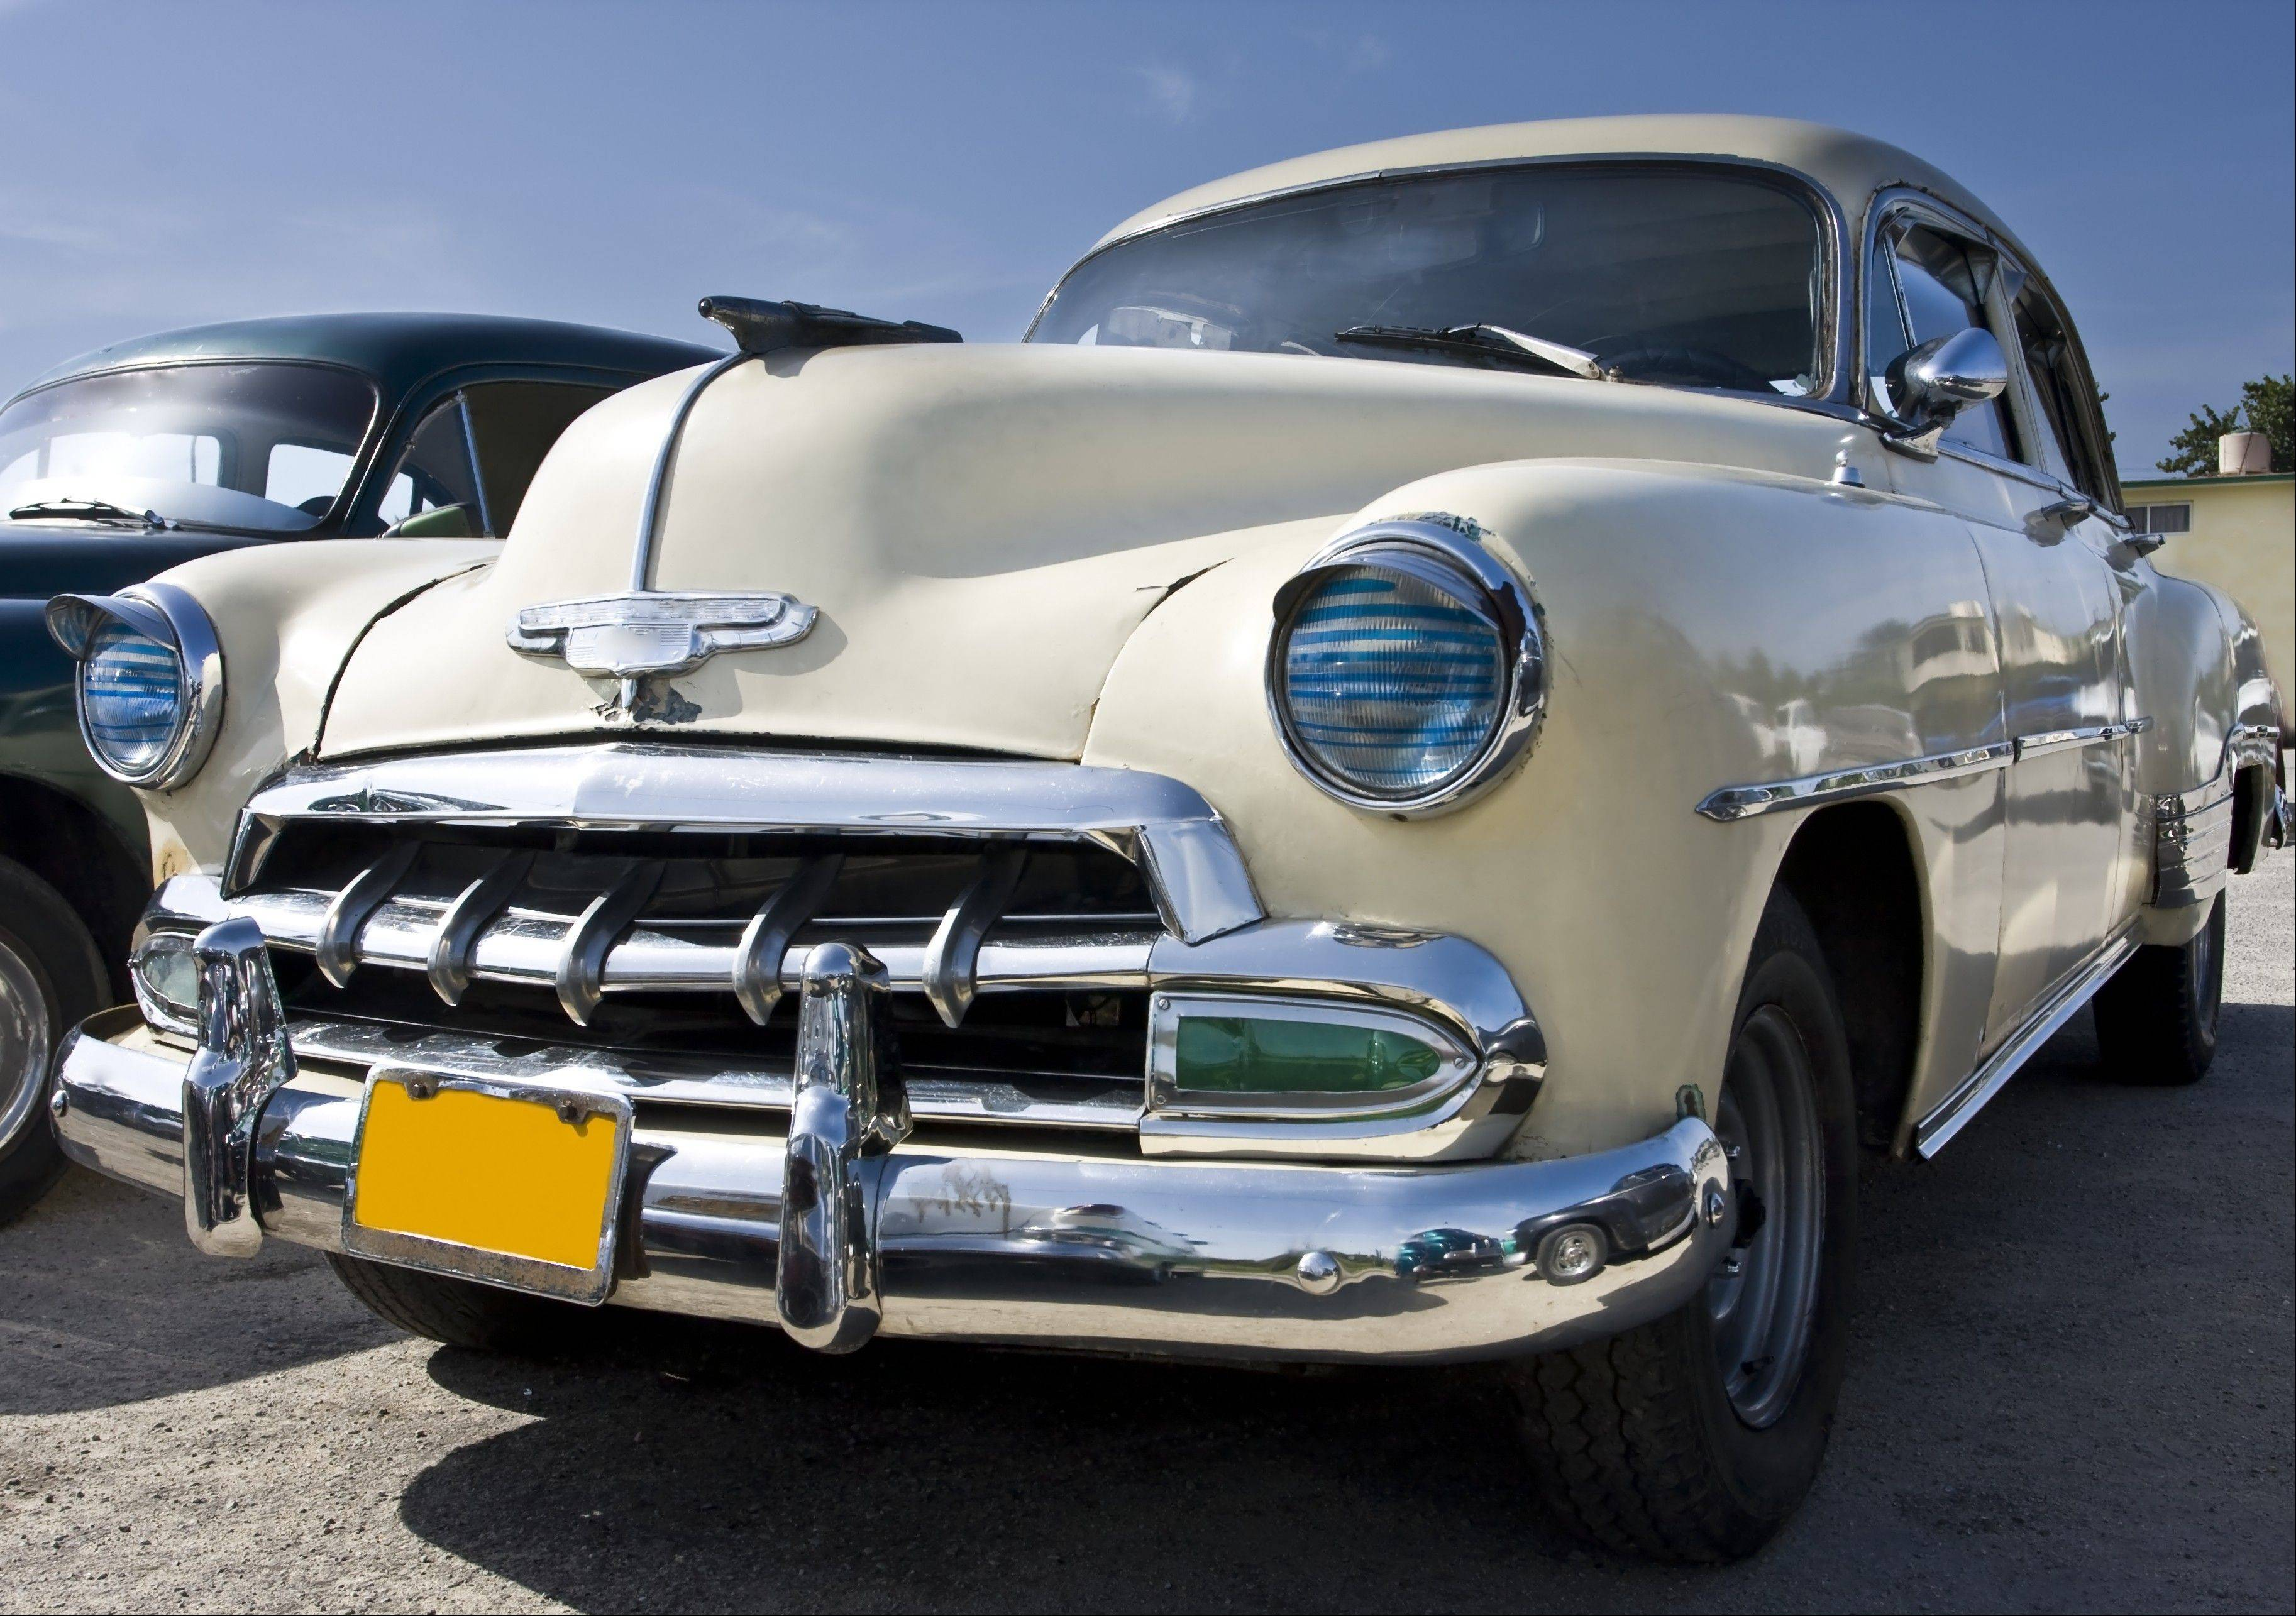 Get a close-up look at some classic cars and enjoy a variety of food at the Classic Car Night event at Miller's Dog N' Suds in Ingleside.